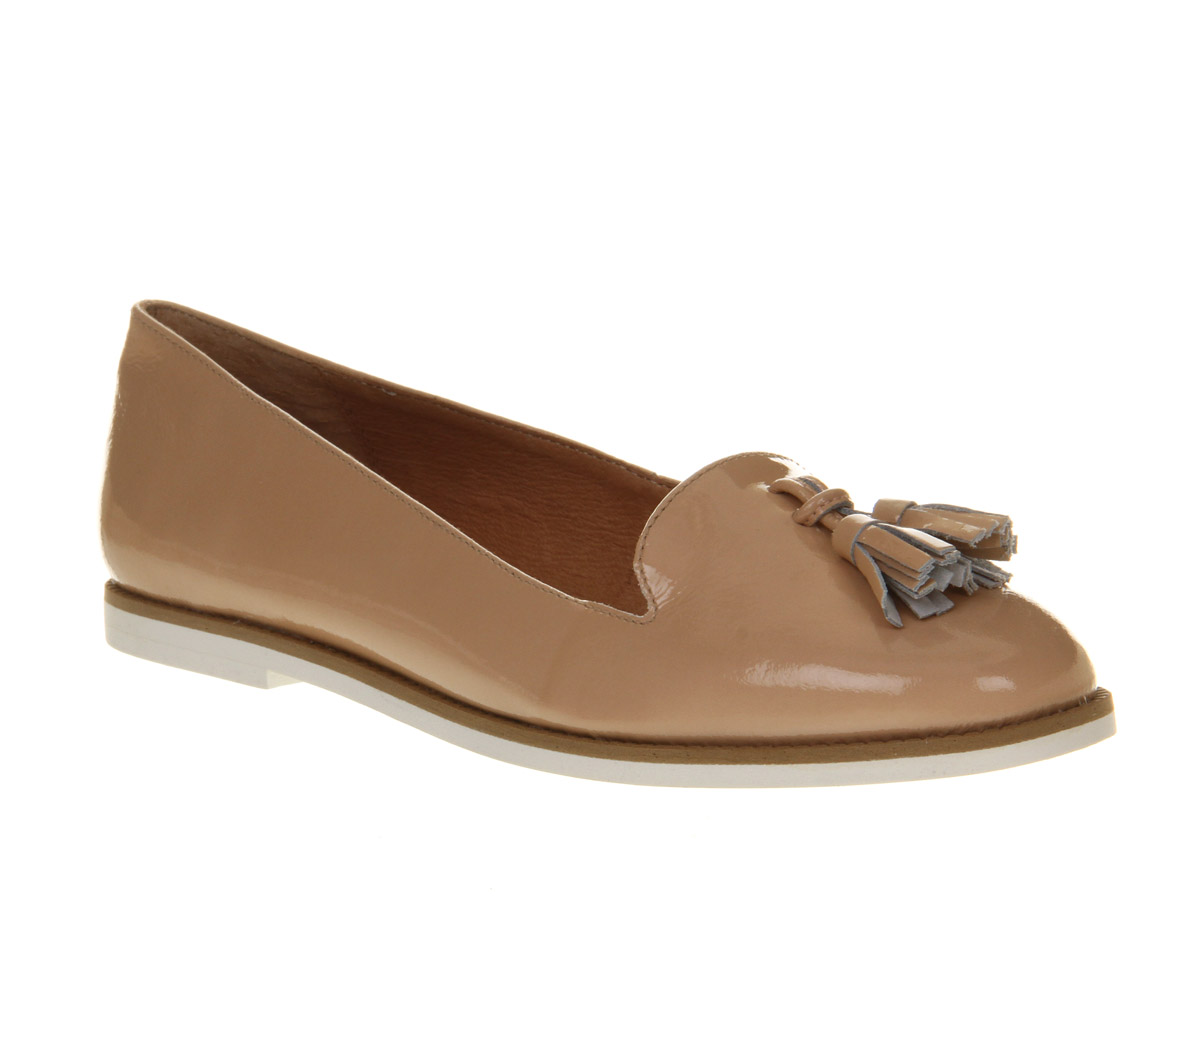 Nude Patent Flats 8